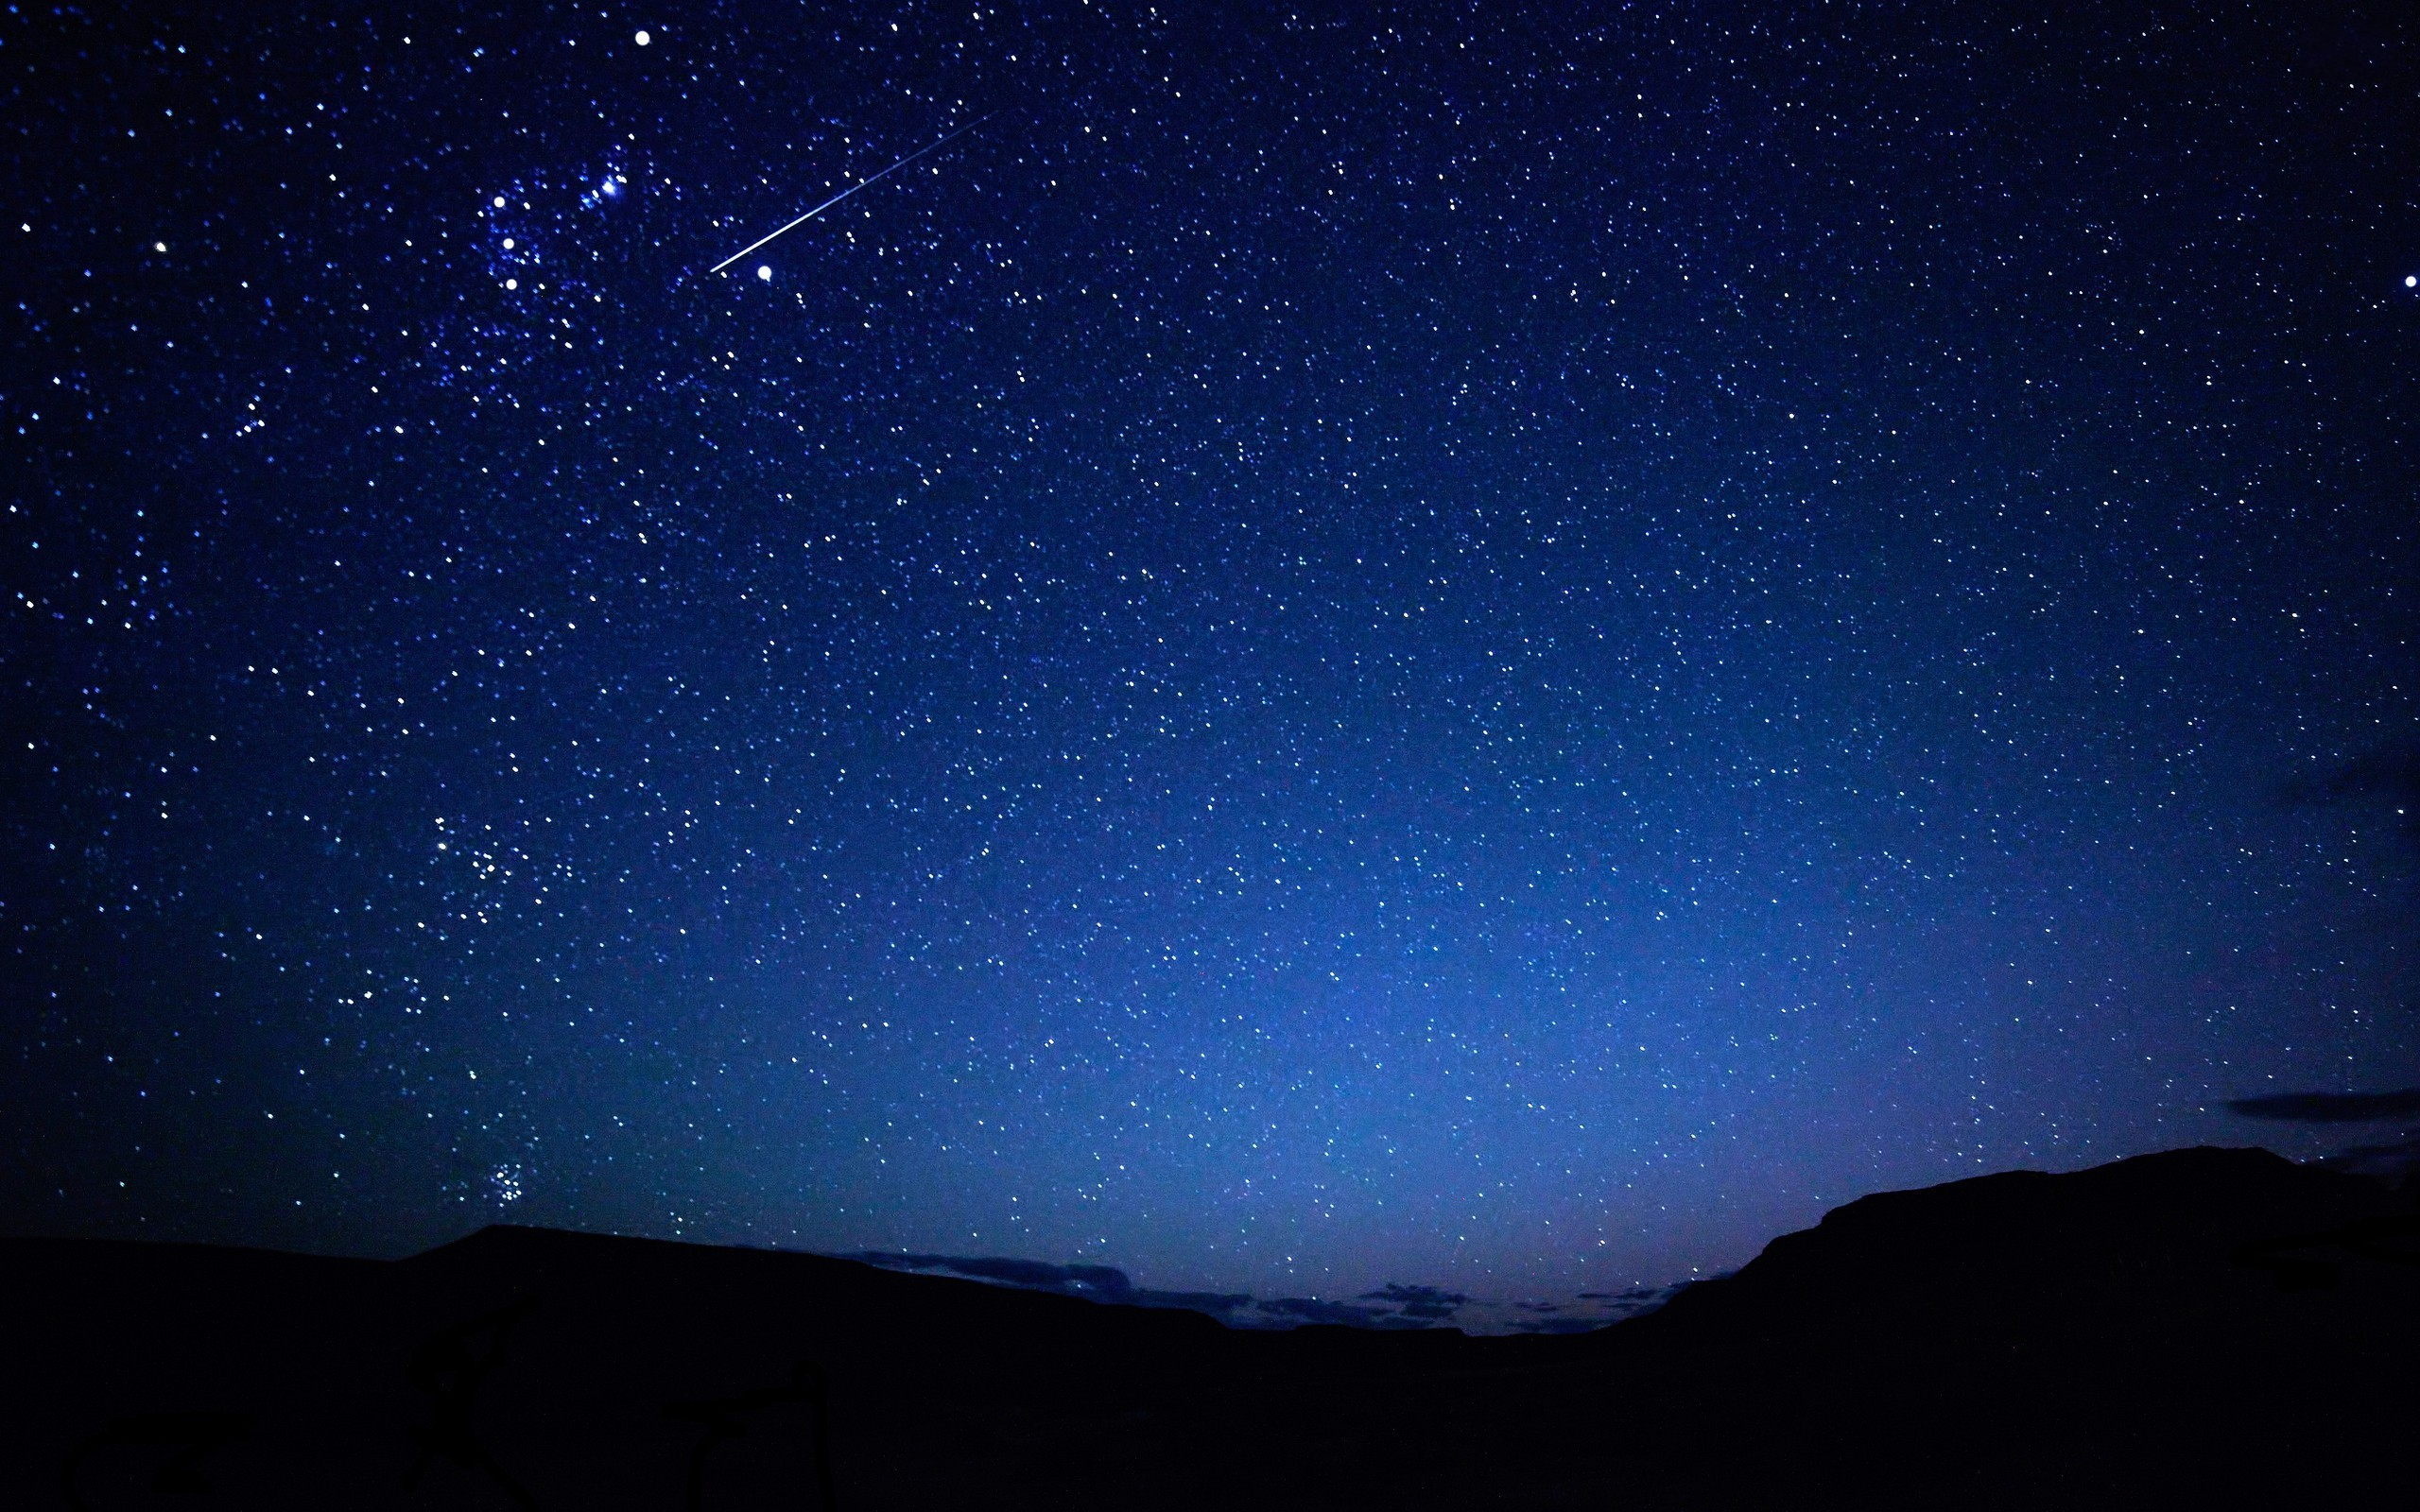 stars Full HD Wallpaper and Background Image  2560x1600  ID519732